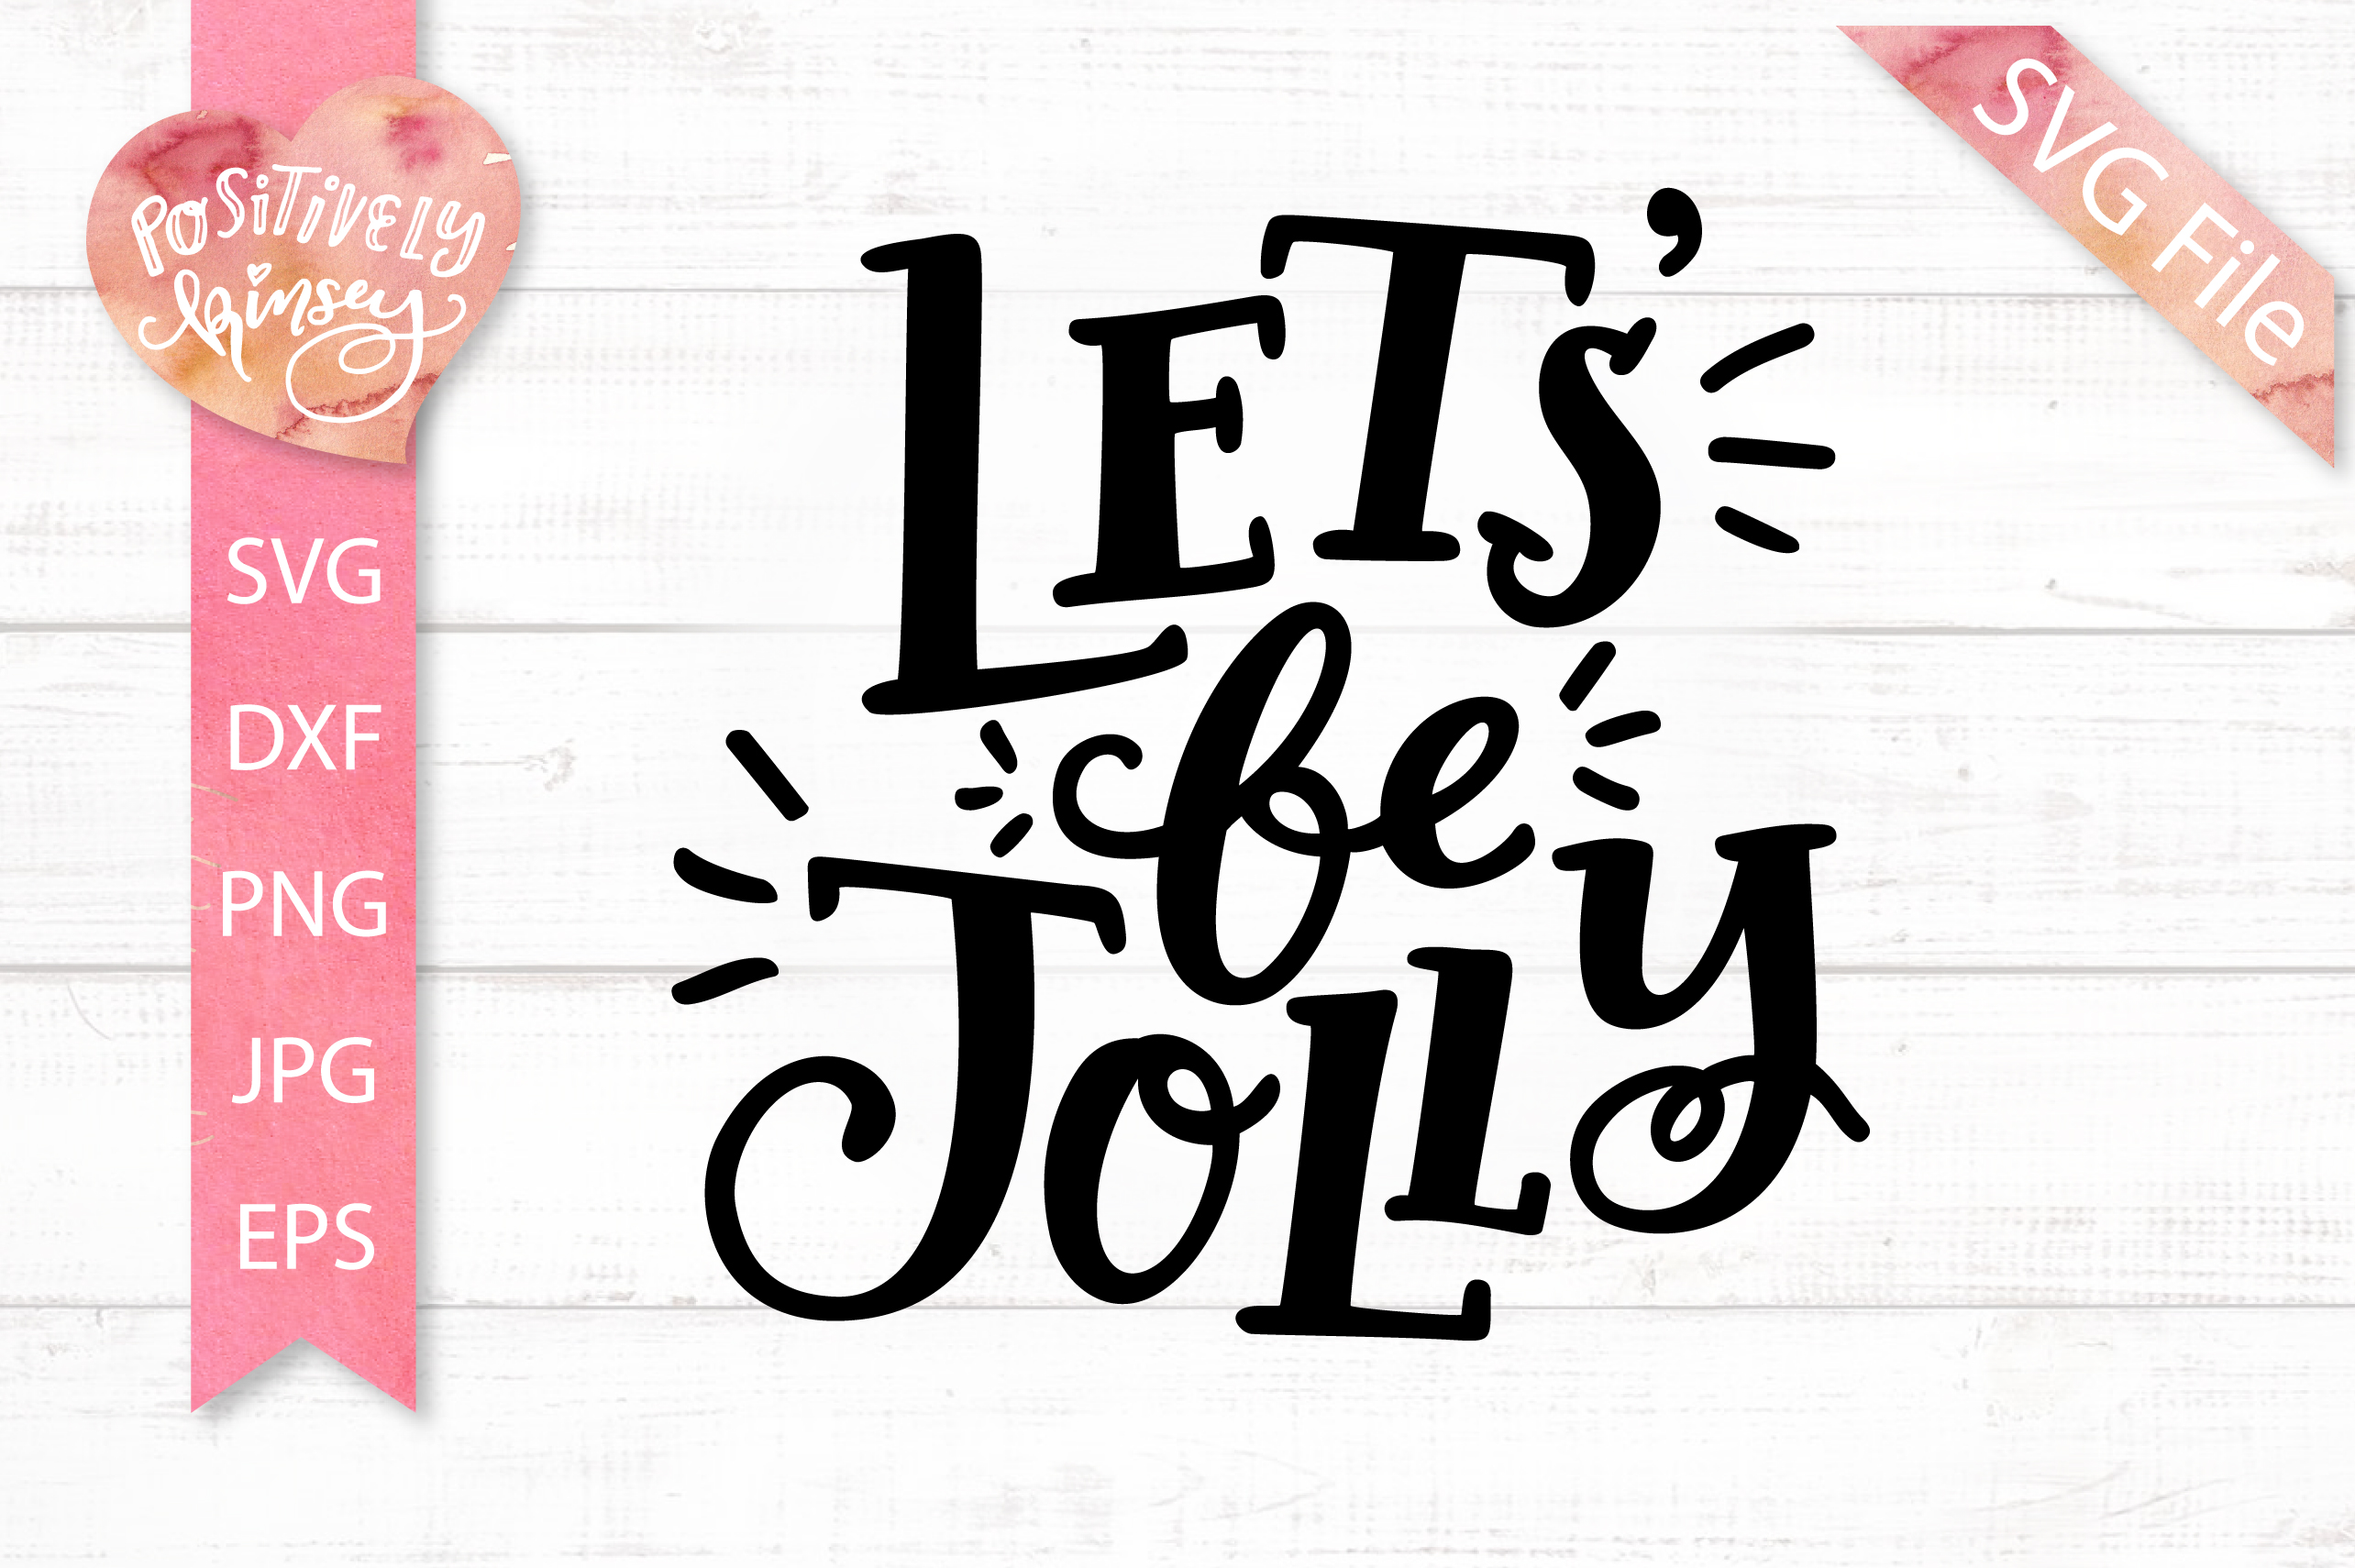 Christmas Quote SVG DXF PNG EPS Let's Be Jolly SVG Design example image 2